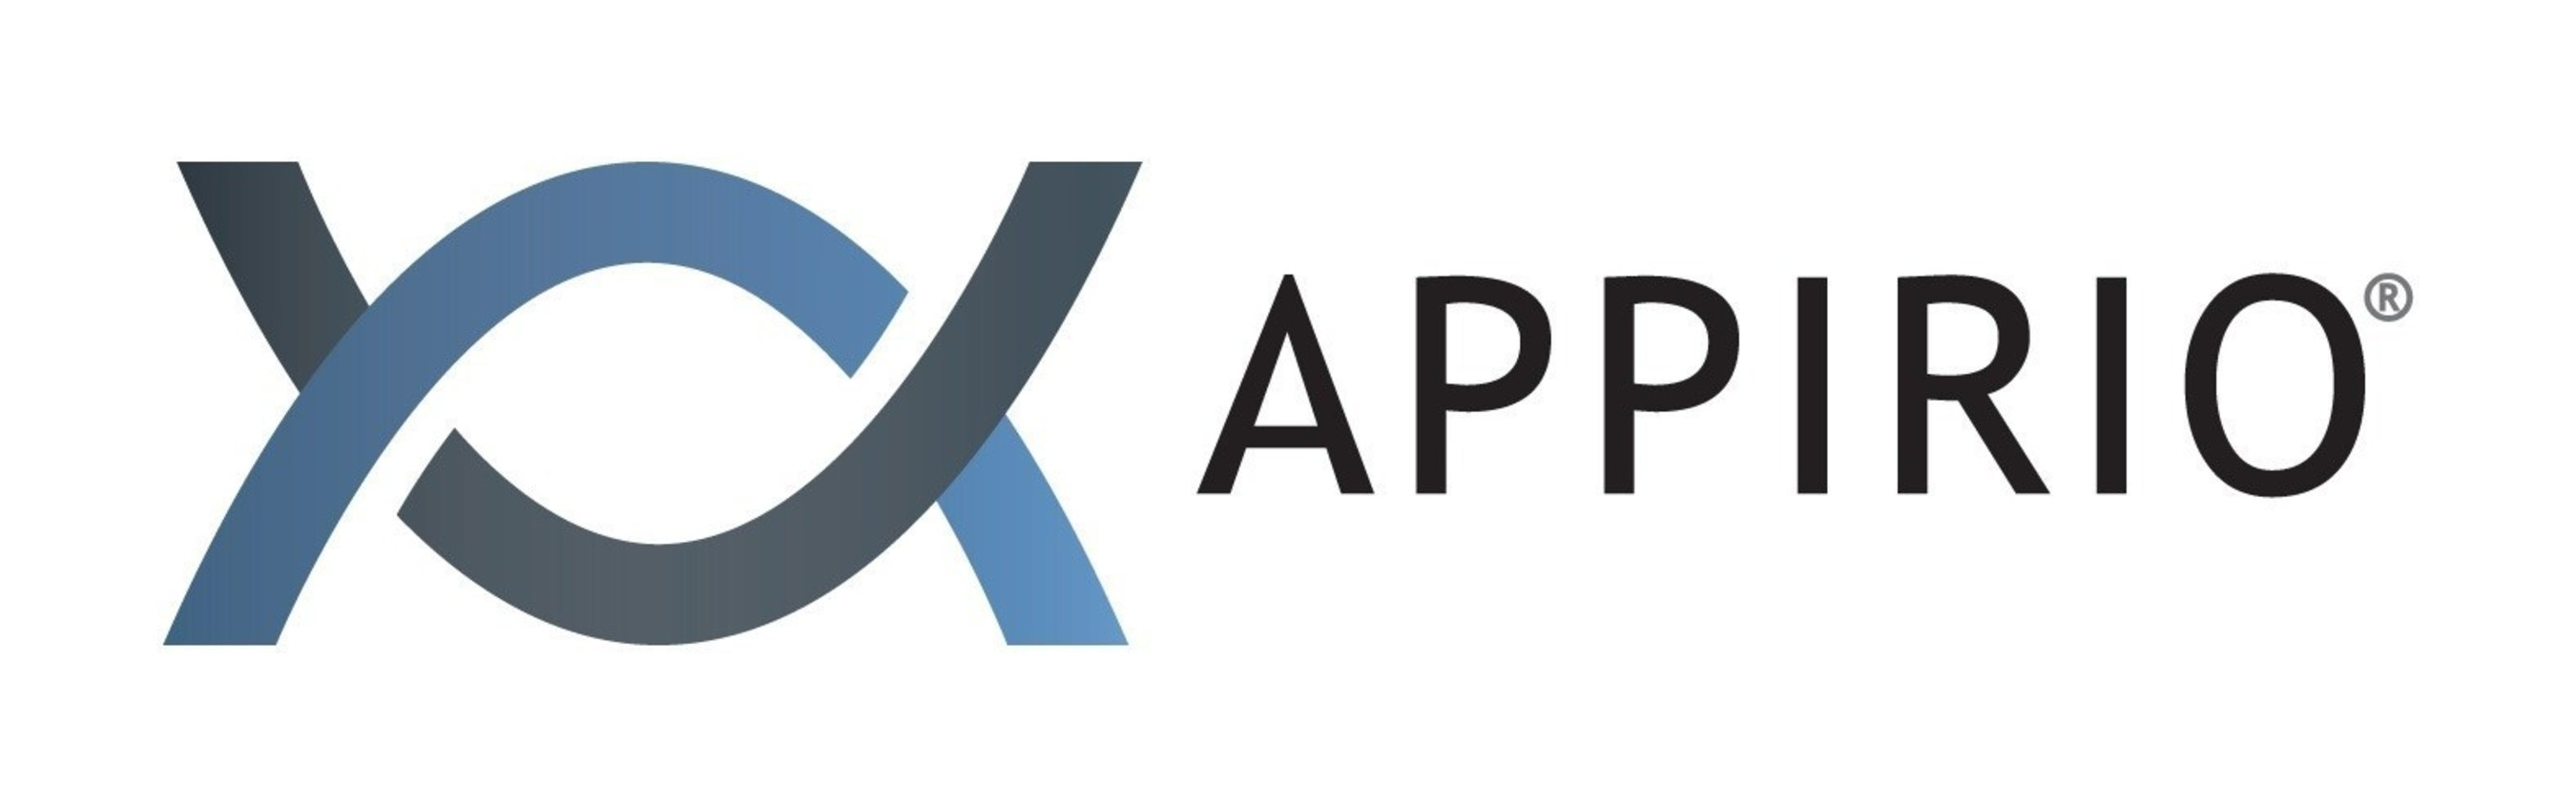 Appirio is a global cloud consultancy that helps customers achieve results in weeks, not years by harnessing the power of the world's top talent.